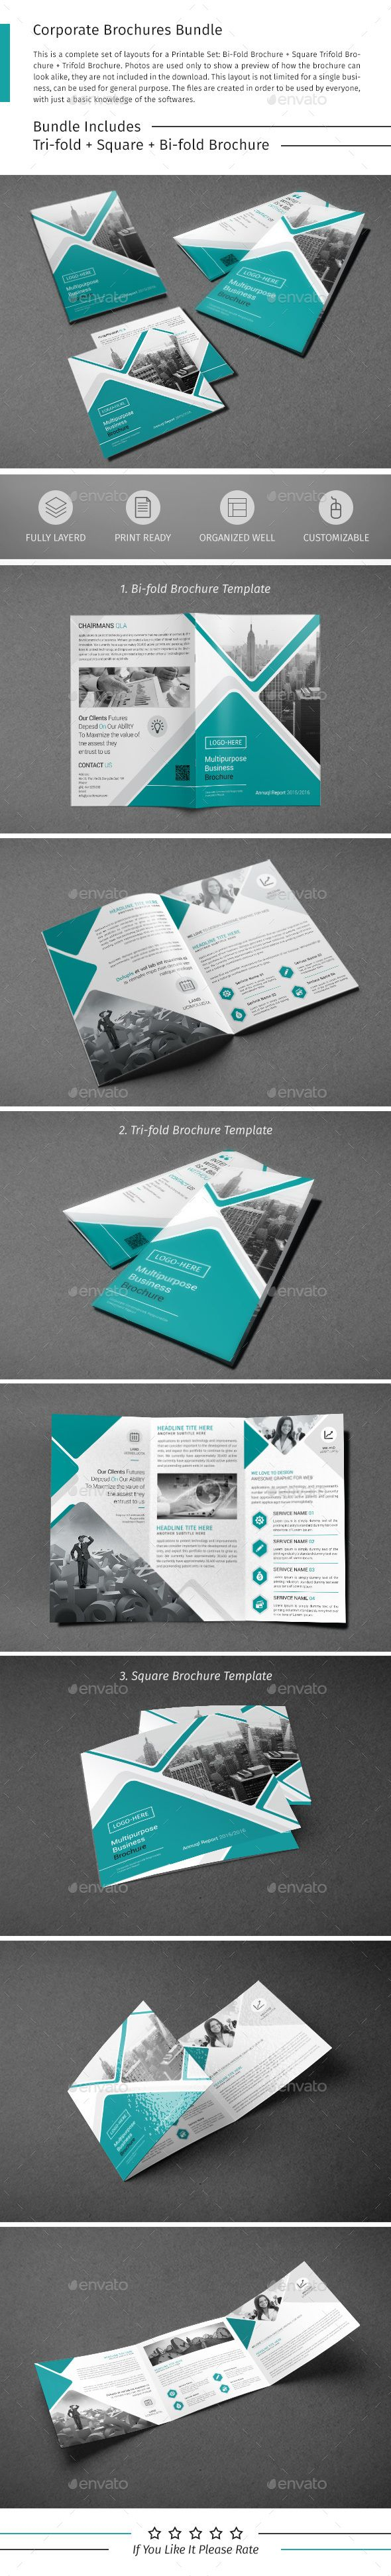 Brochure Bundle Template PSD. Download here: http://graphicriver.net/item/brochure-bundle-06/15485235?ref=ksioks